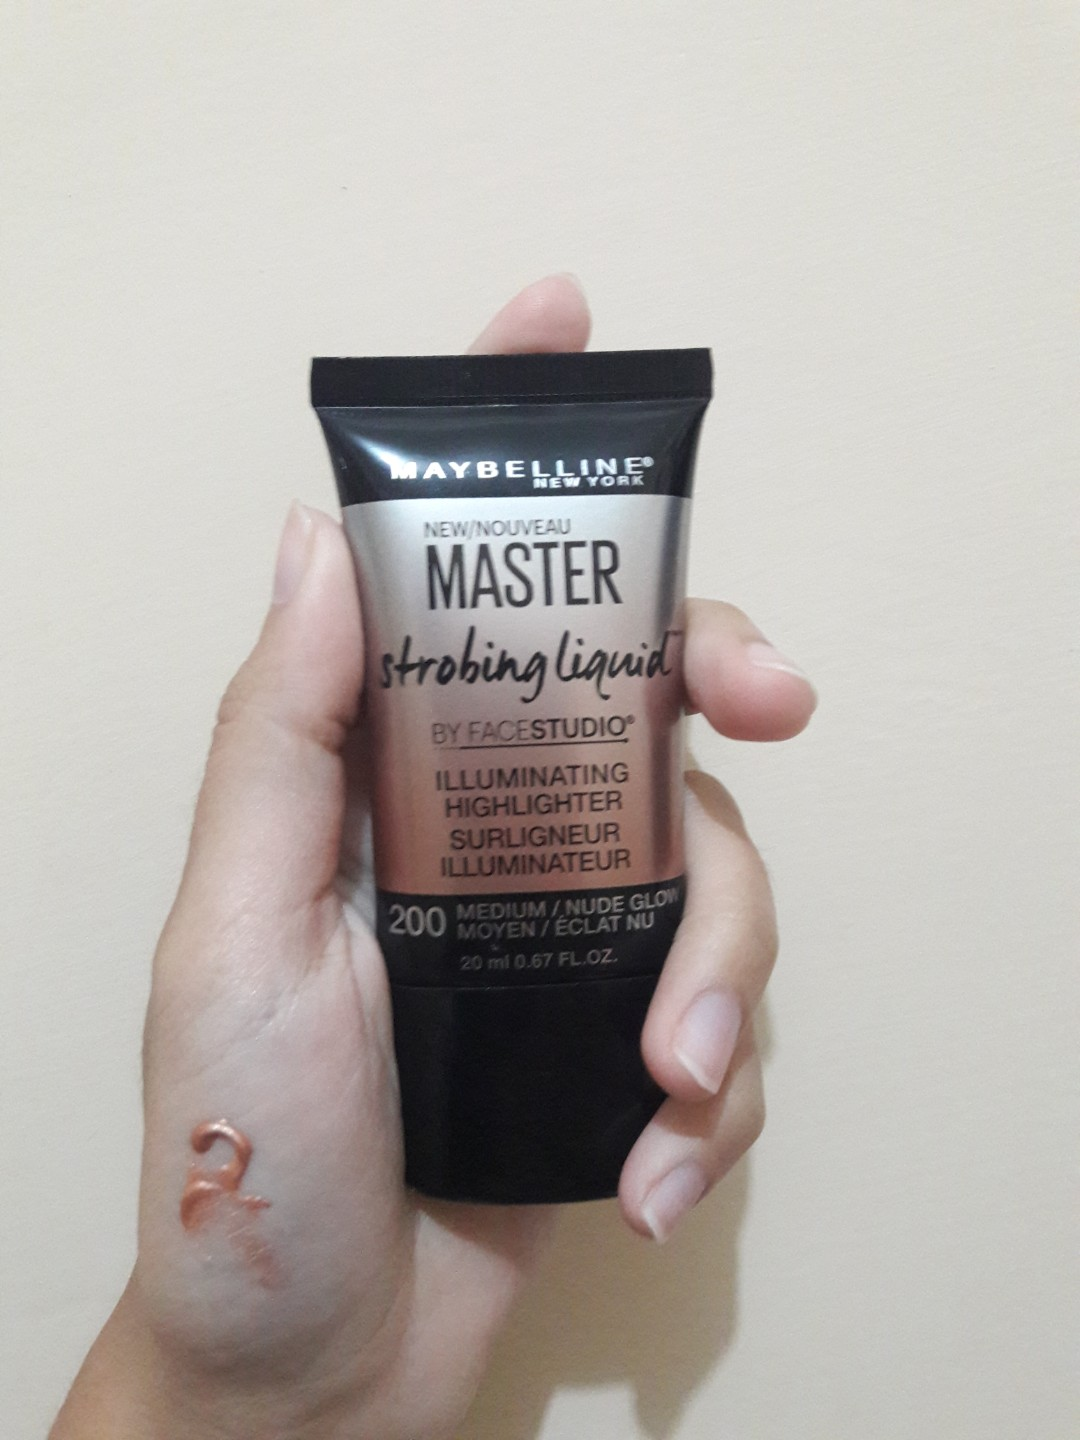 Mastee Strobing Cream - Medium/Nude Glow